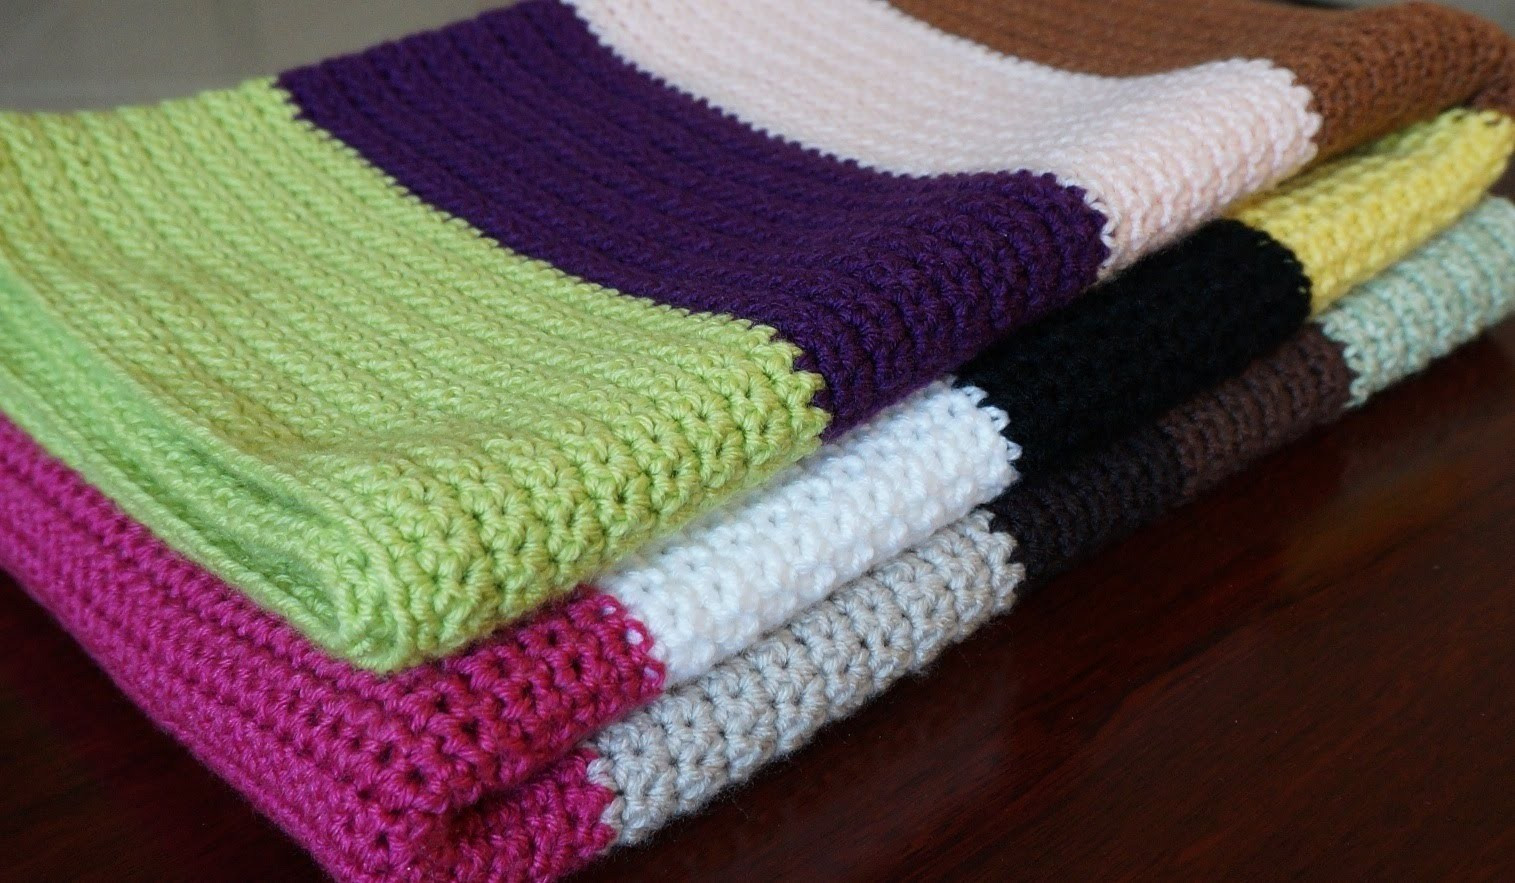 Awesome Beginner Crochet Afghan Patterns Baby Blanket Pattern Pdf Crochet Blanket Patterns for Beginners Of Charming 50 Pictures Crochet Blanket Patterns for Beginners